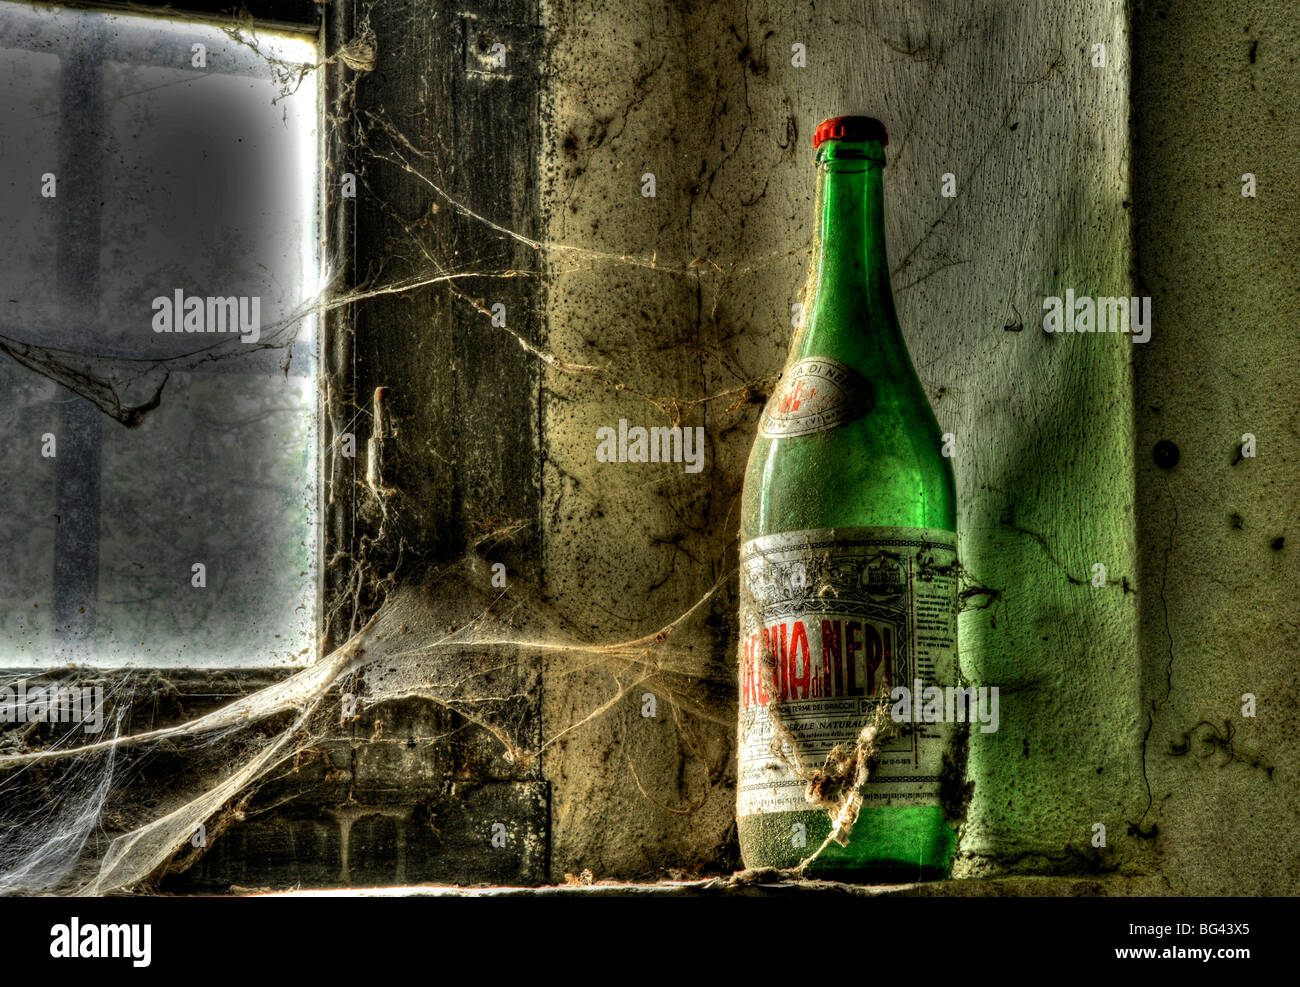 Old Bottle on a window, deserted farm near San Quirico d'Orcia, Valle de Orcia, Tuscany, Italy - Stock Image